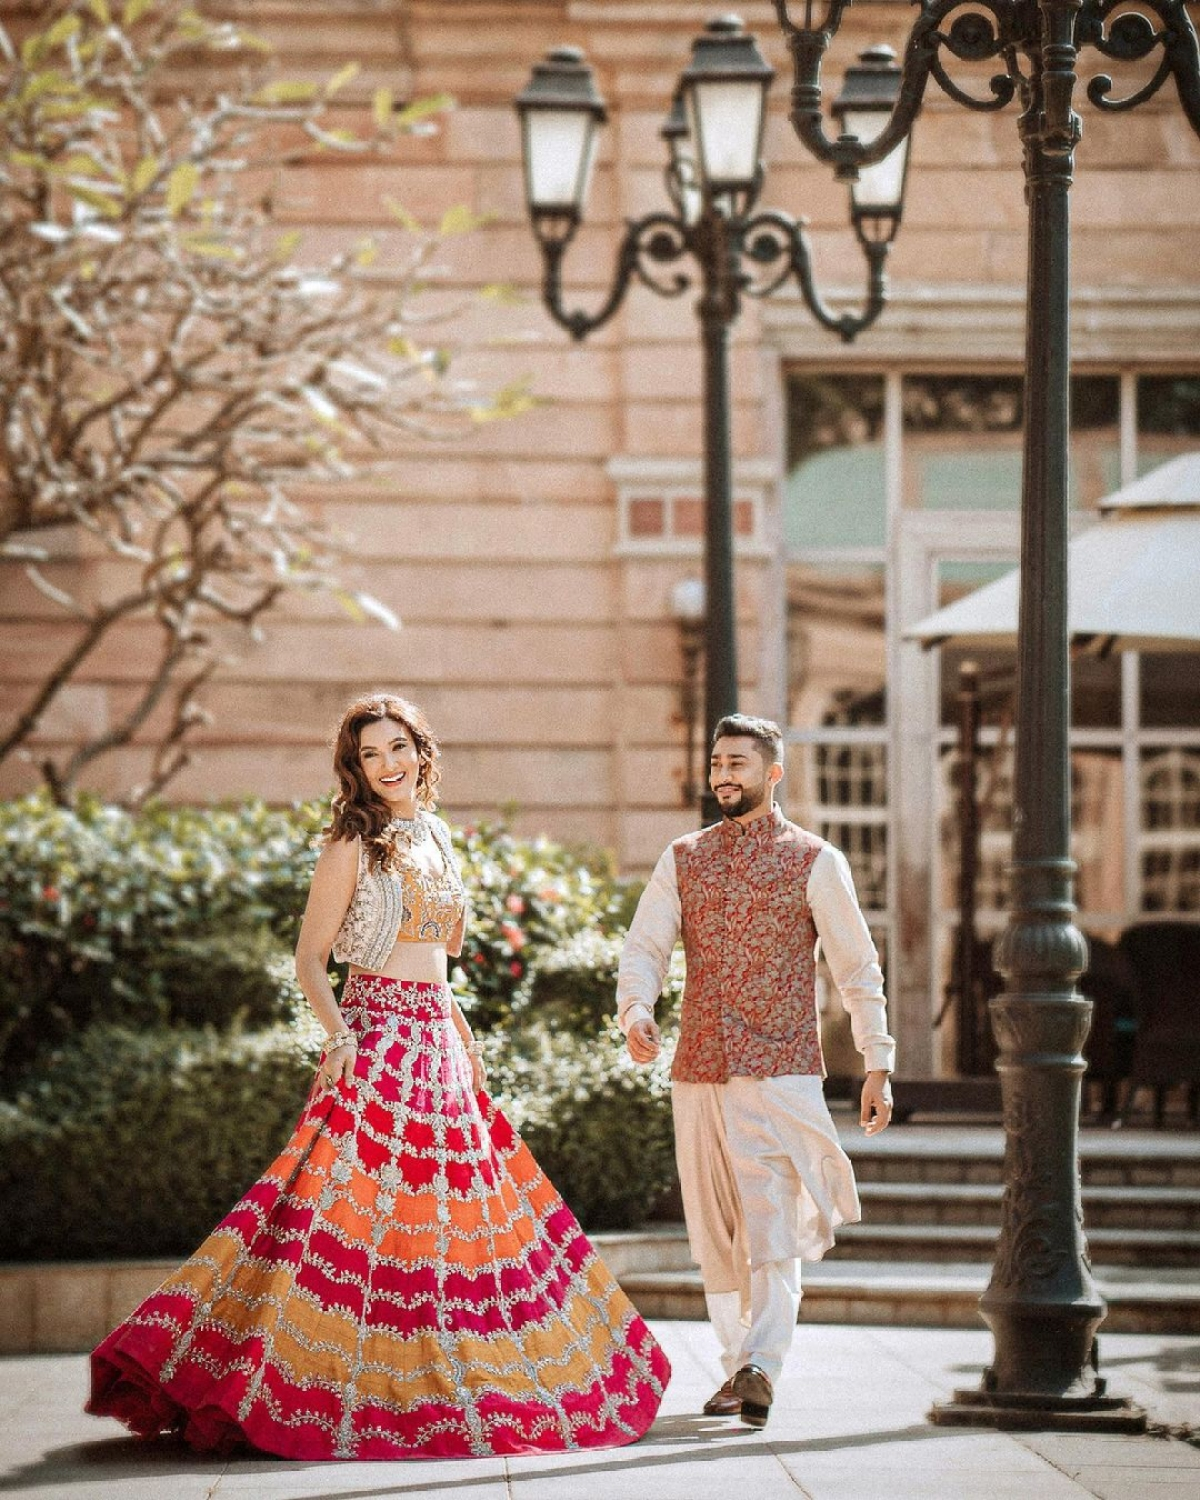 Gauahar Khan, Zaid Darbar to tie the knot on Christmas 2020 in an intimate ceremony